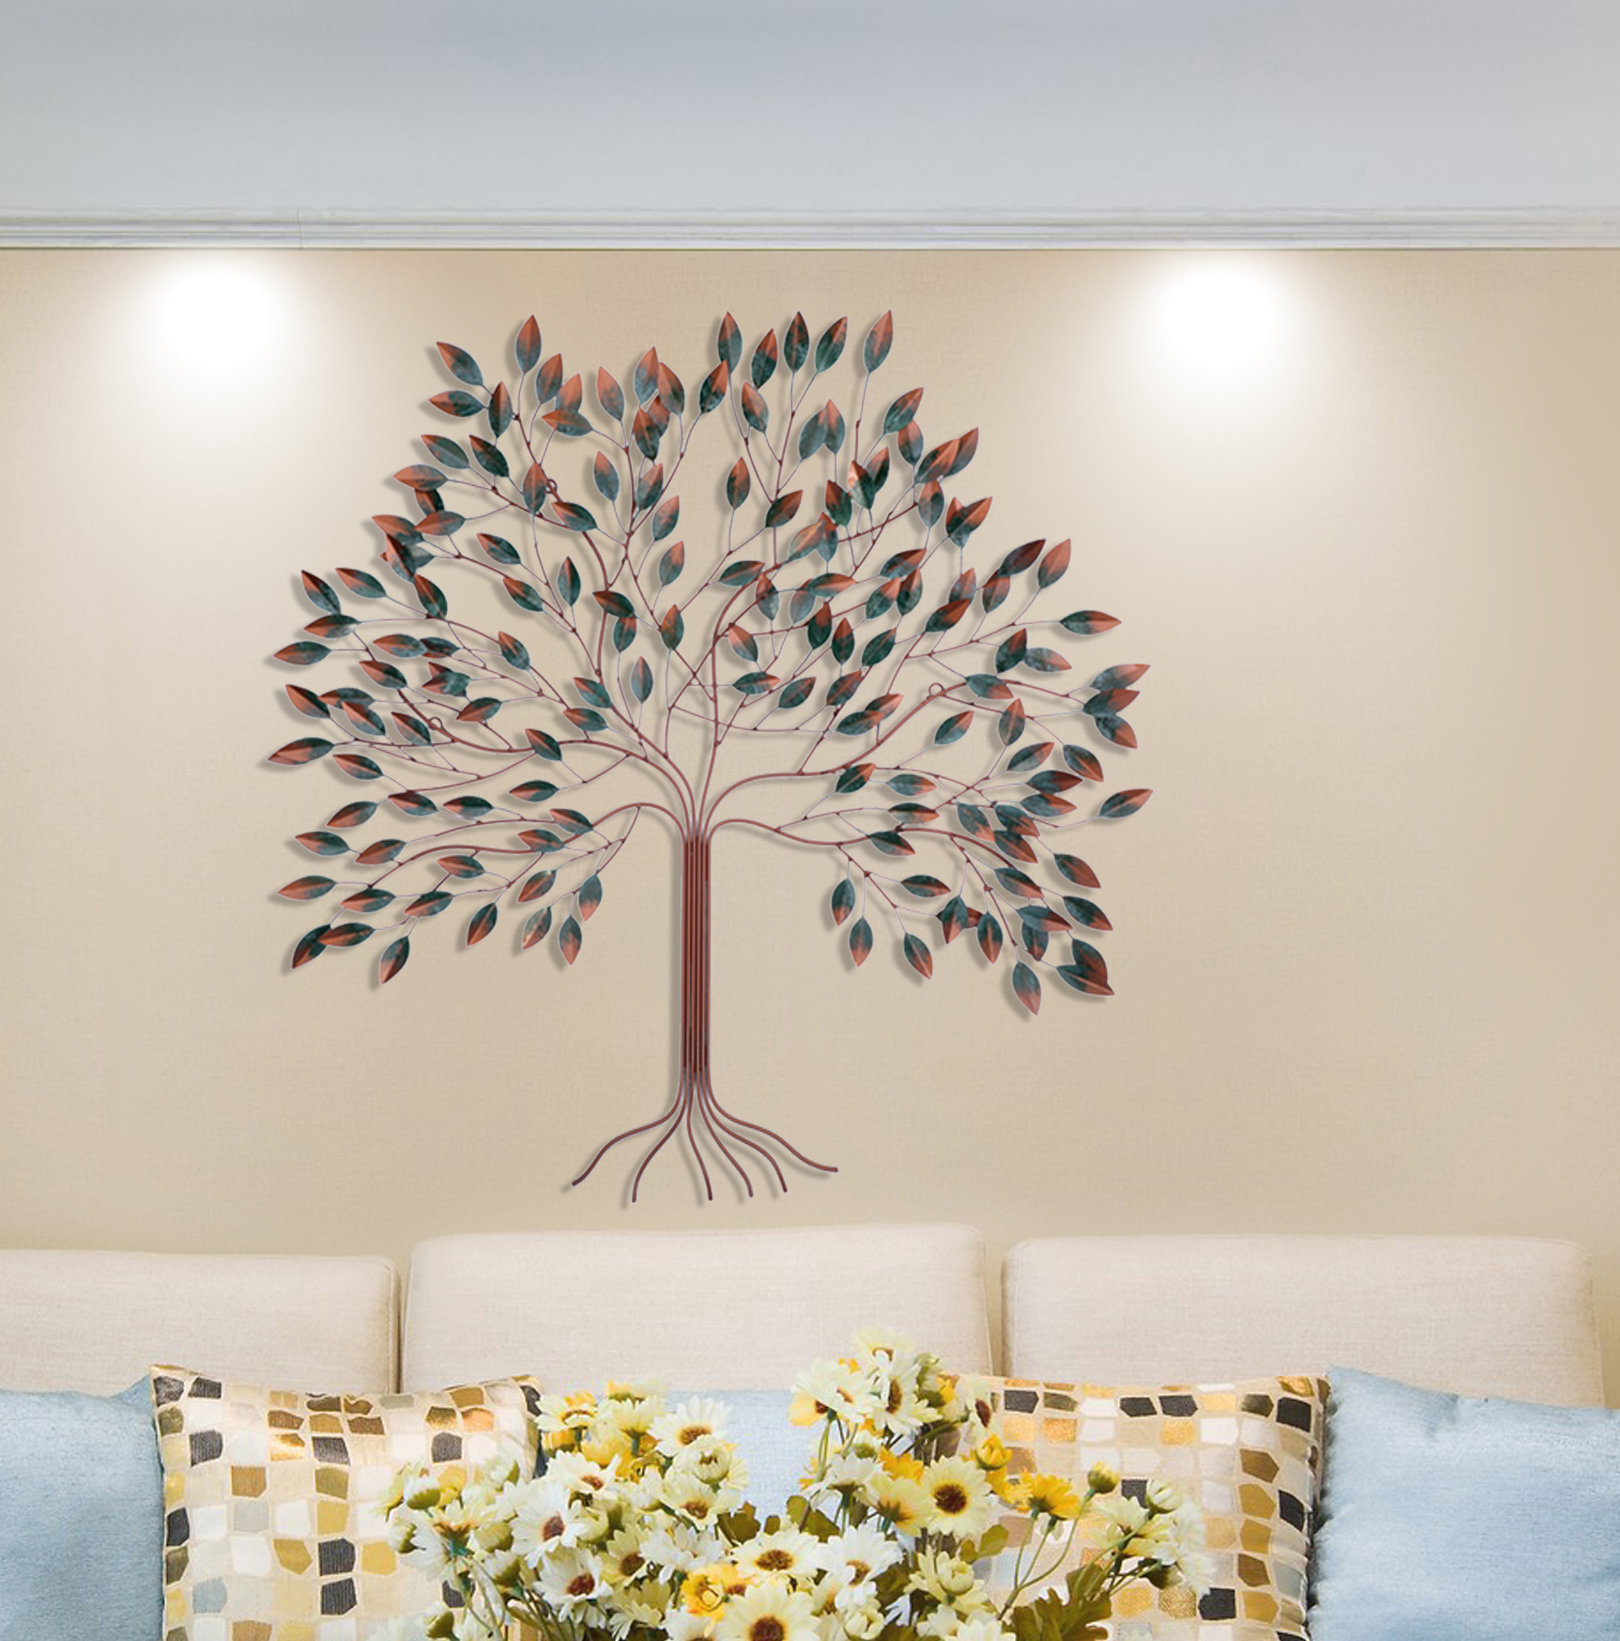 Tree Of Life Wall Decor | Wayfair Intended For Tree Of Life Wall Decor By Red Barrel Studio (View 2 of 30)